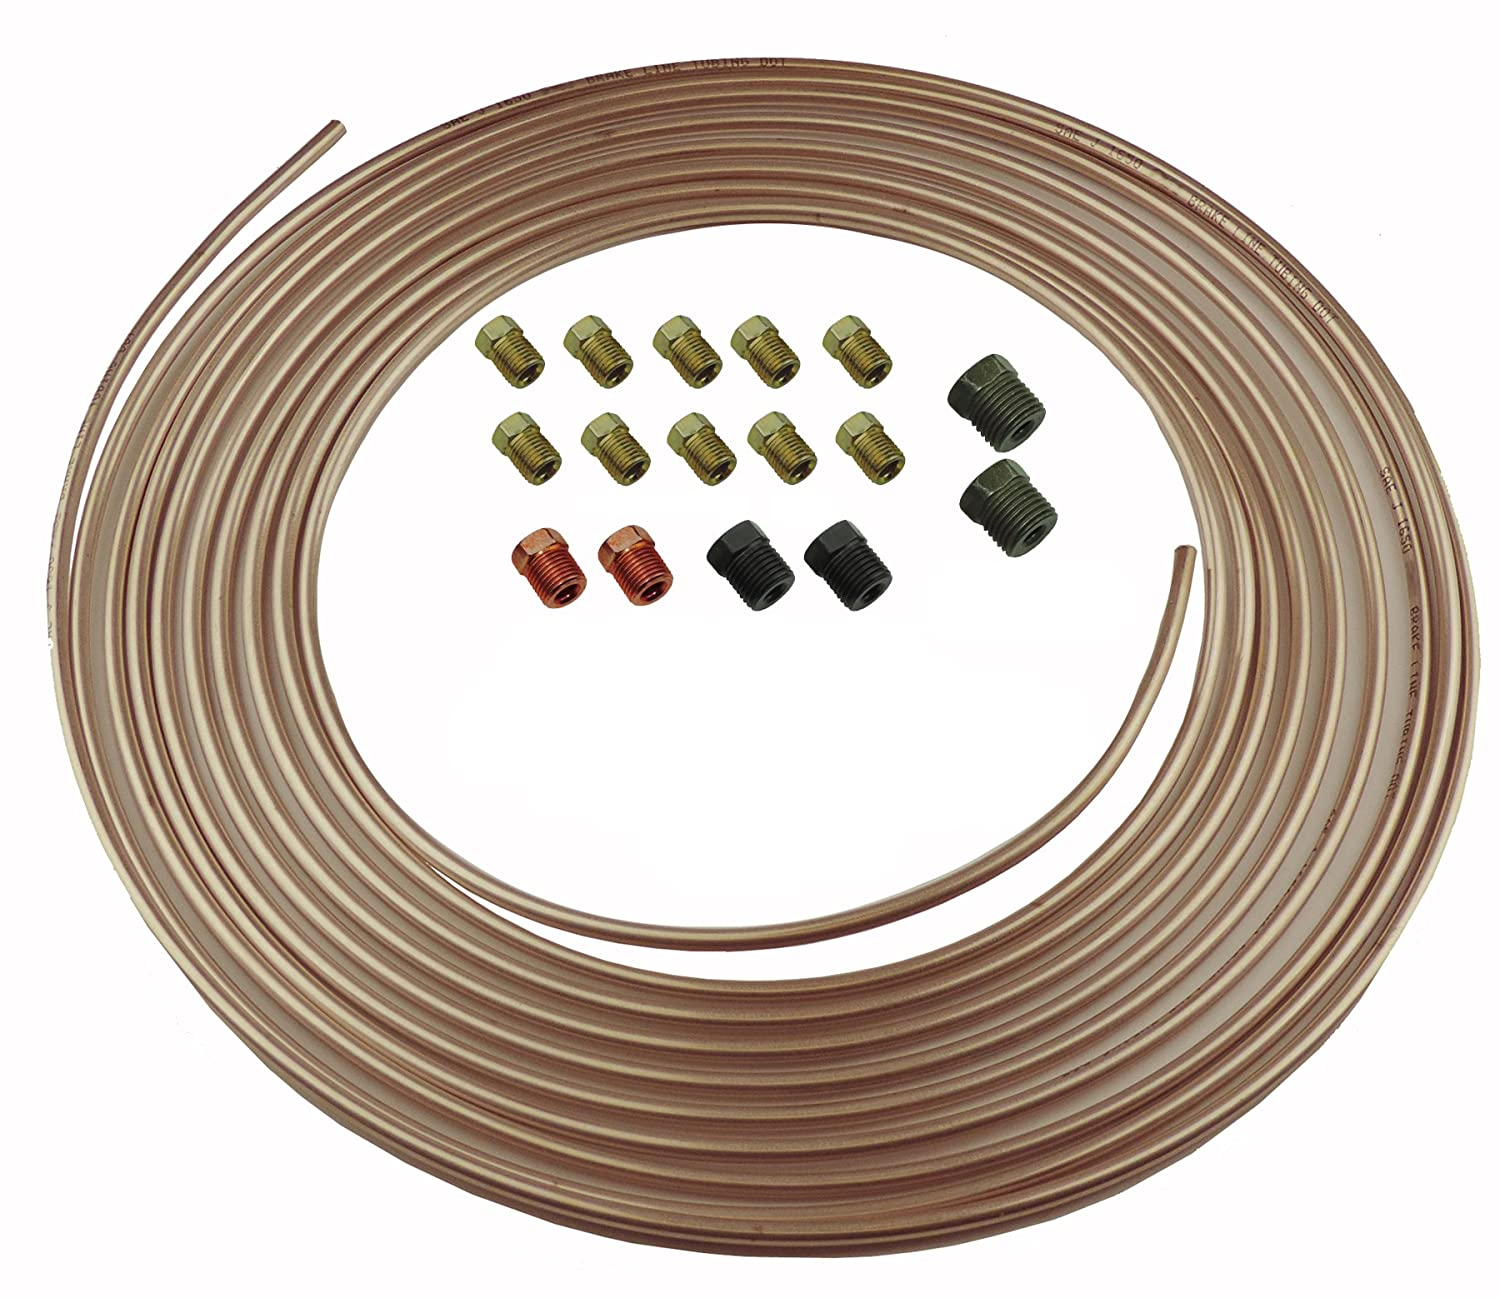 Copper Nickel Brake Line Tubing Kit 3/16 OD 25 Foot Coil Roll all Size Fittings (L-5-4 + L-3-2) Inline Tube